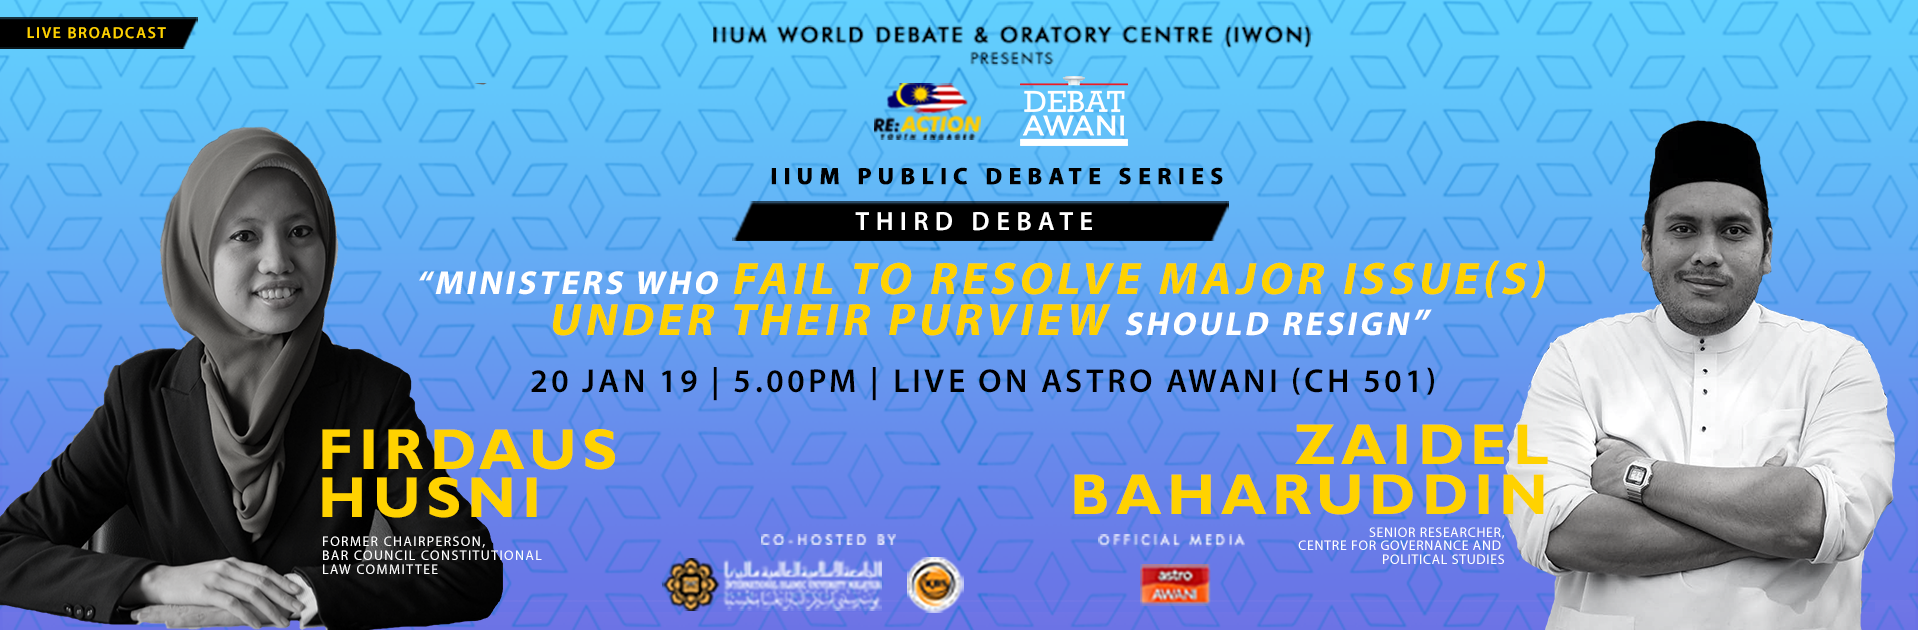 IIUM Public Debate Series 3